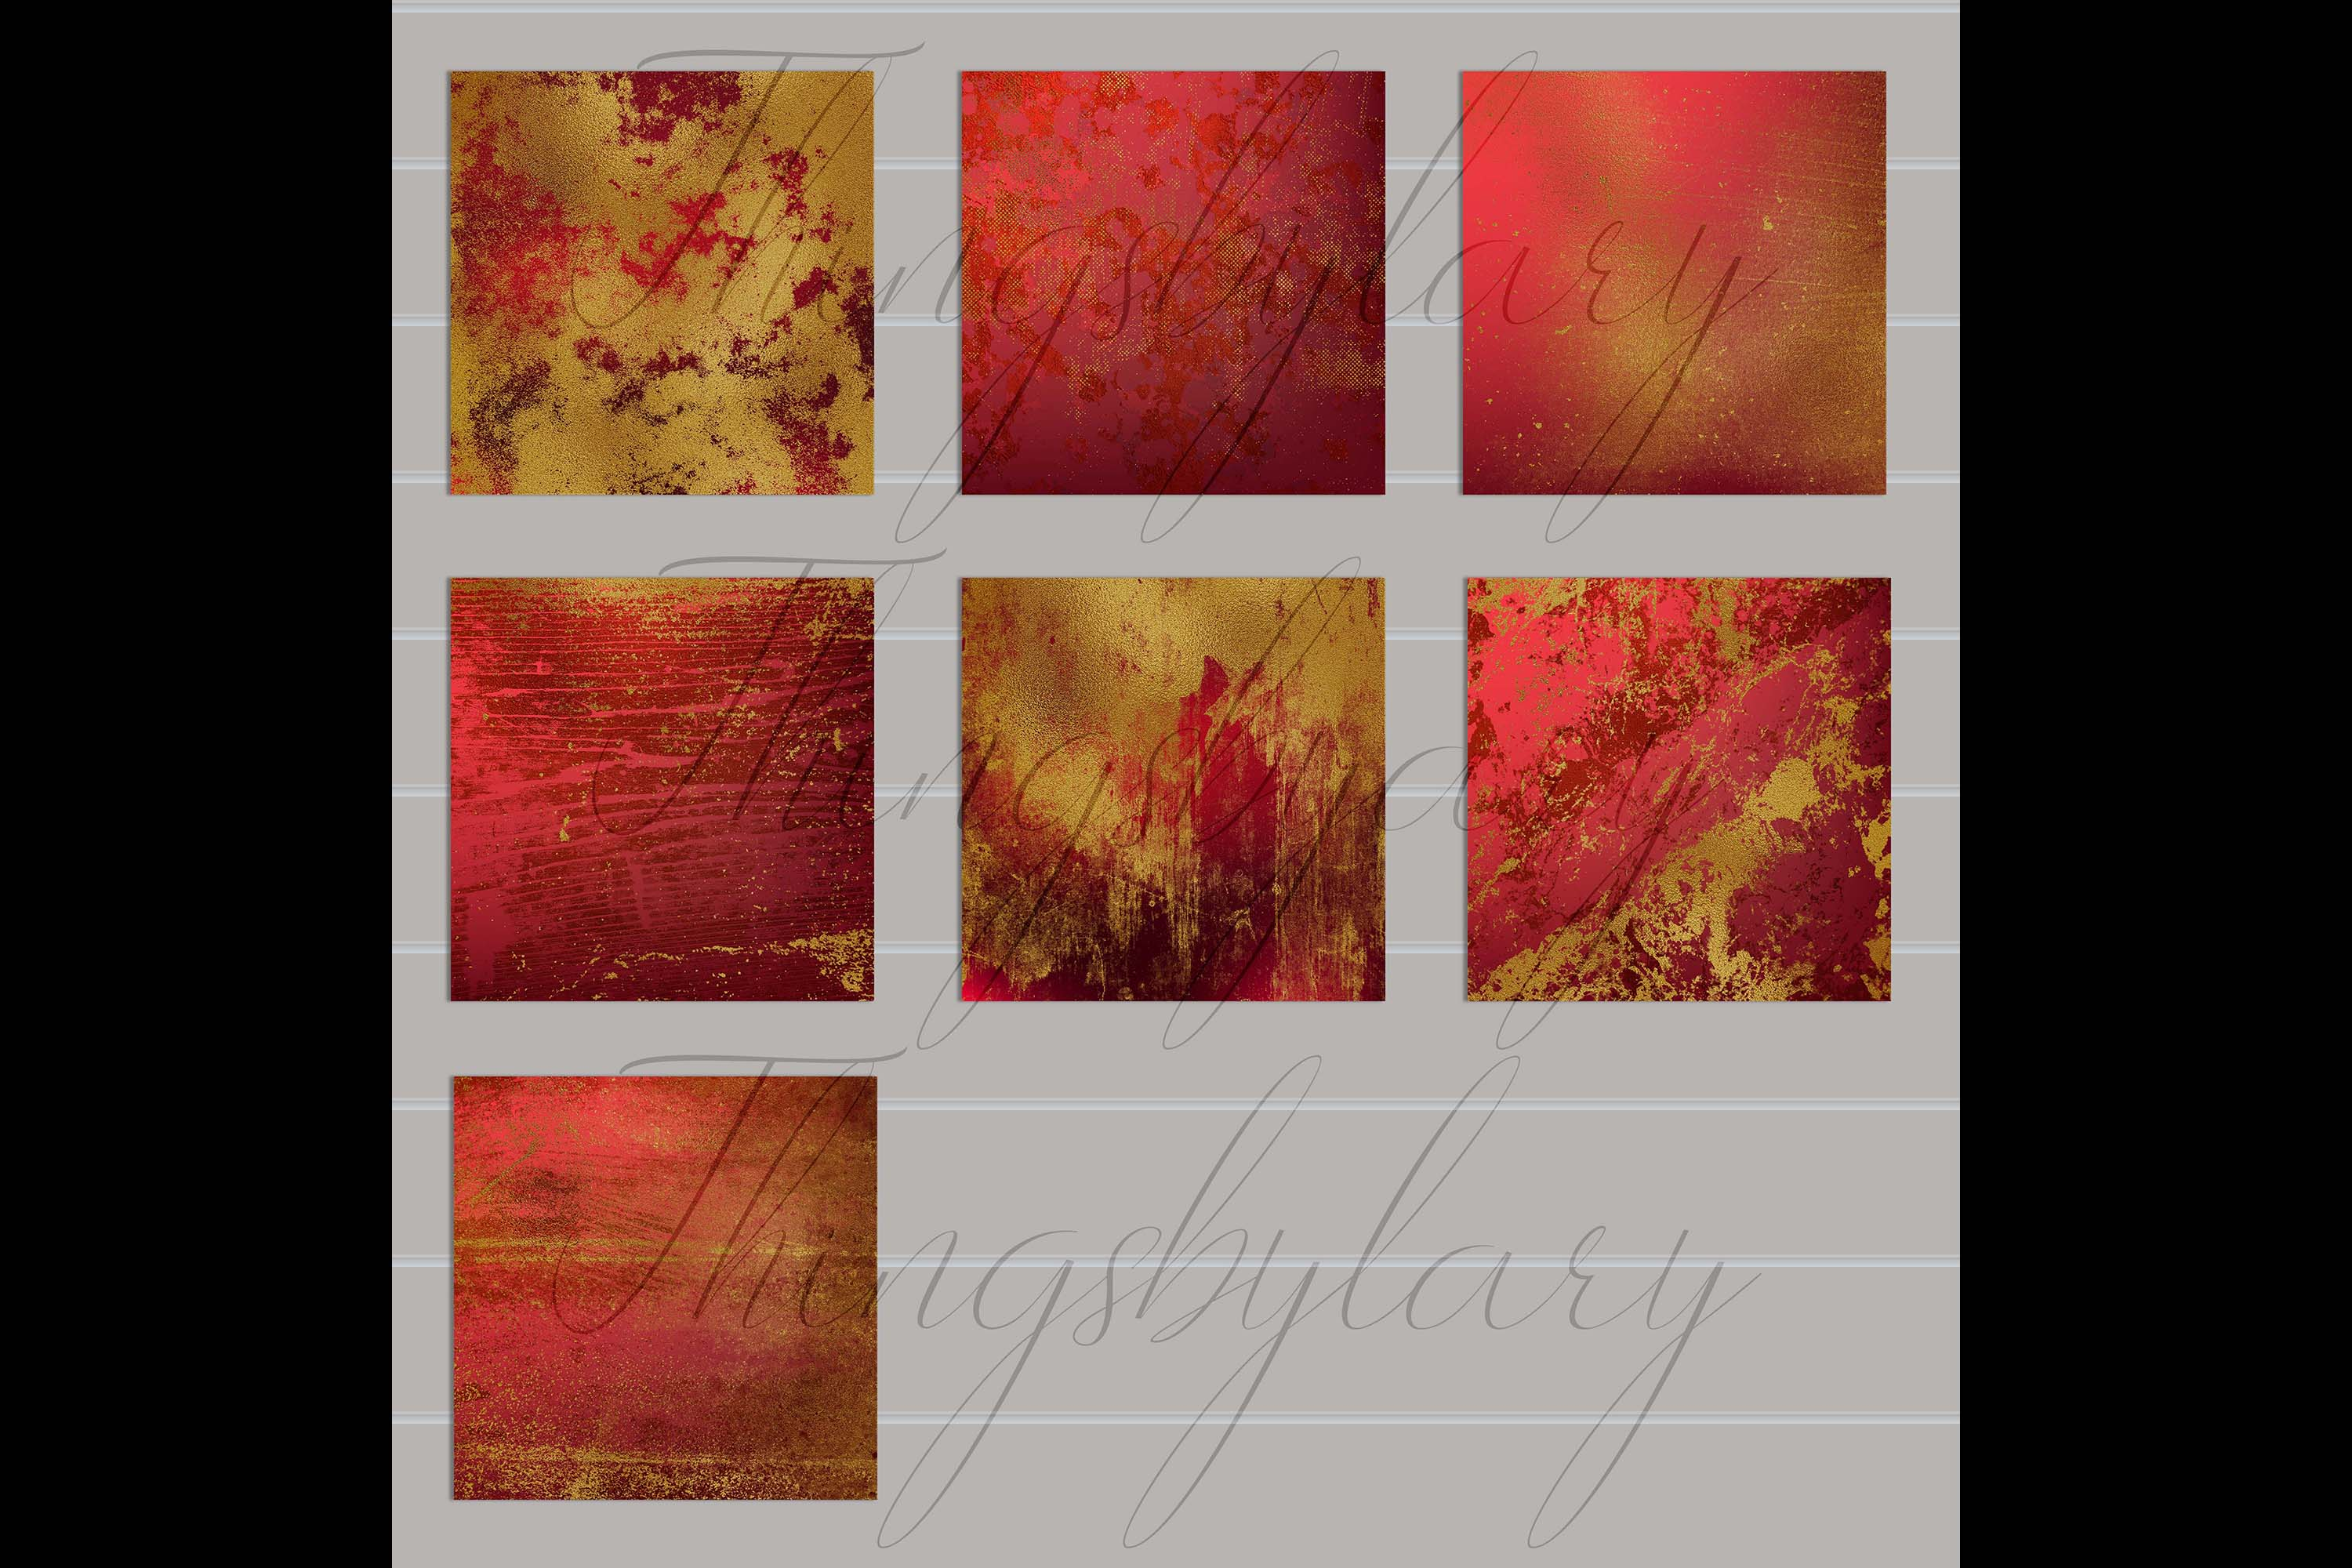 16 Distressed Red and Gold Artistic Painted Digital Papers example image 10